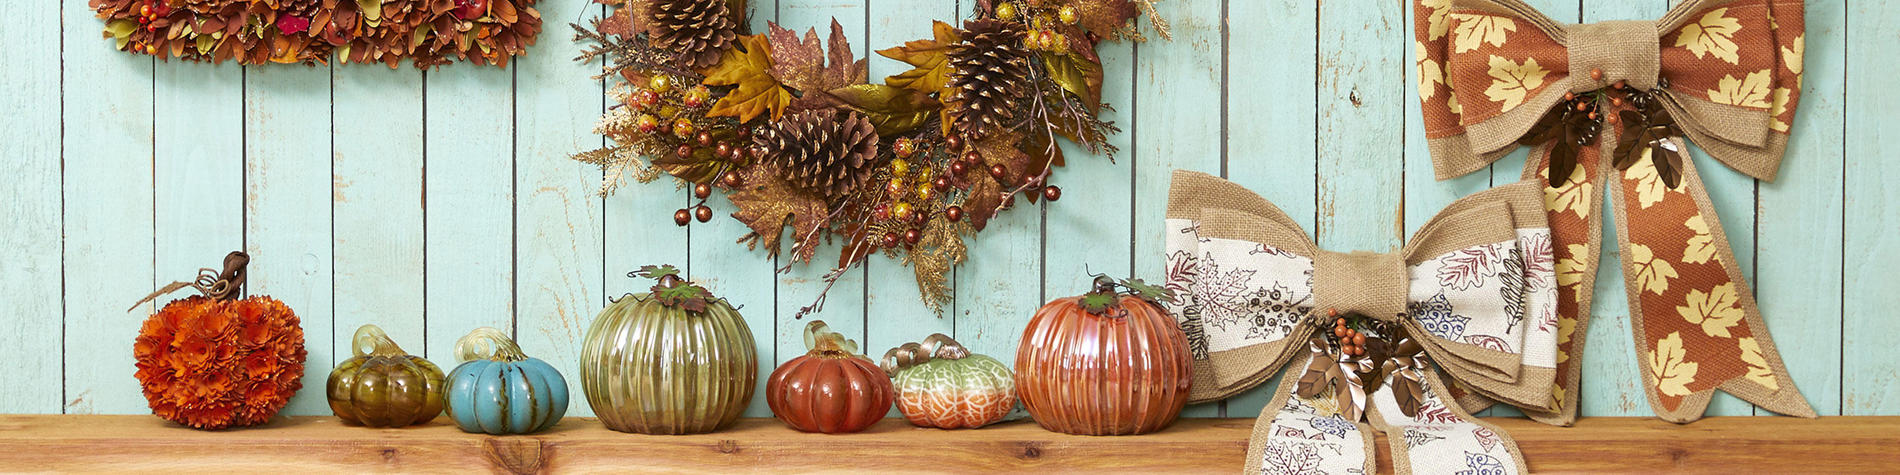 Festive fall decor for your Fall, Halloween and Thanksgiving decorating needs